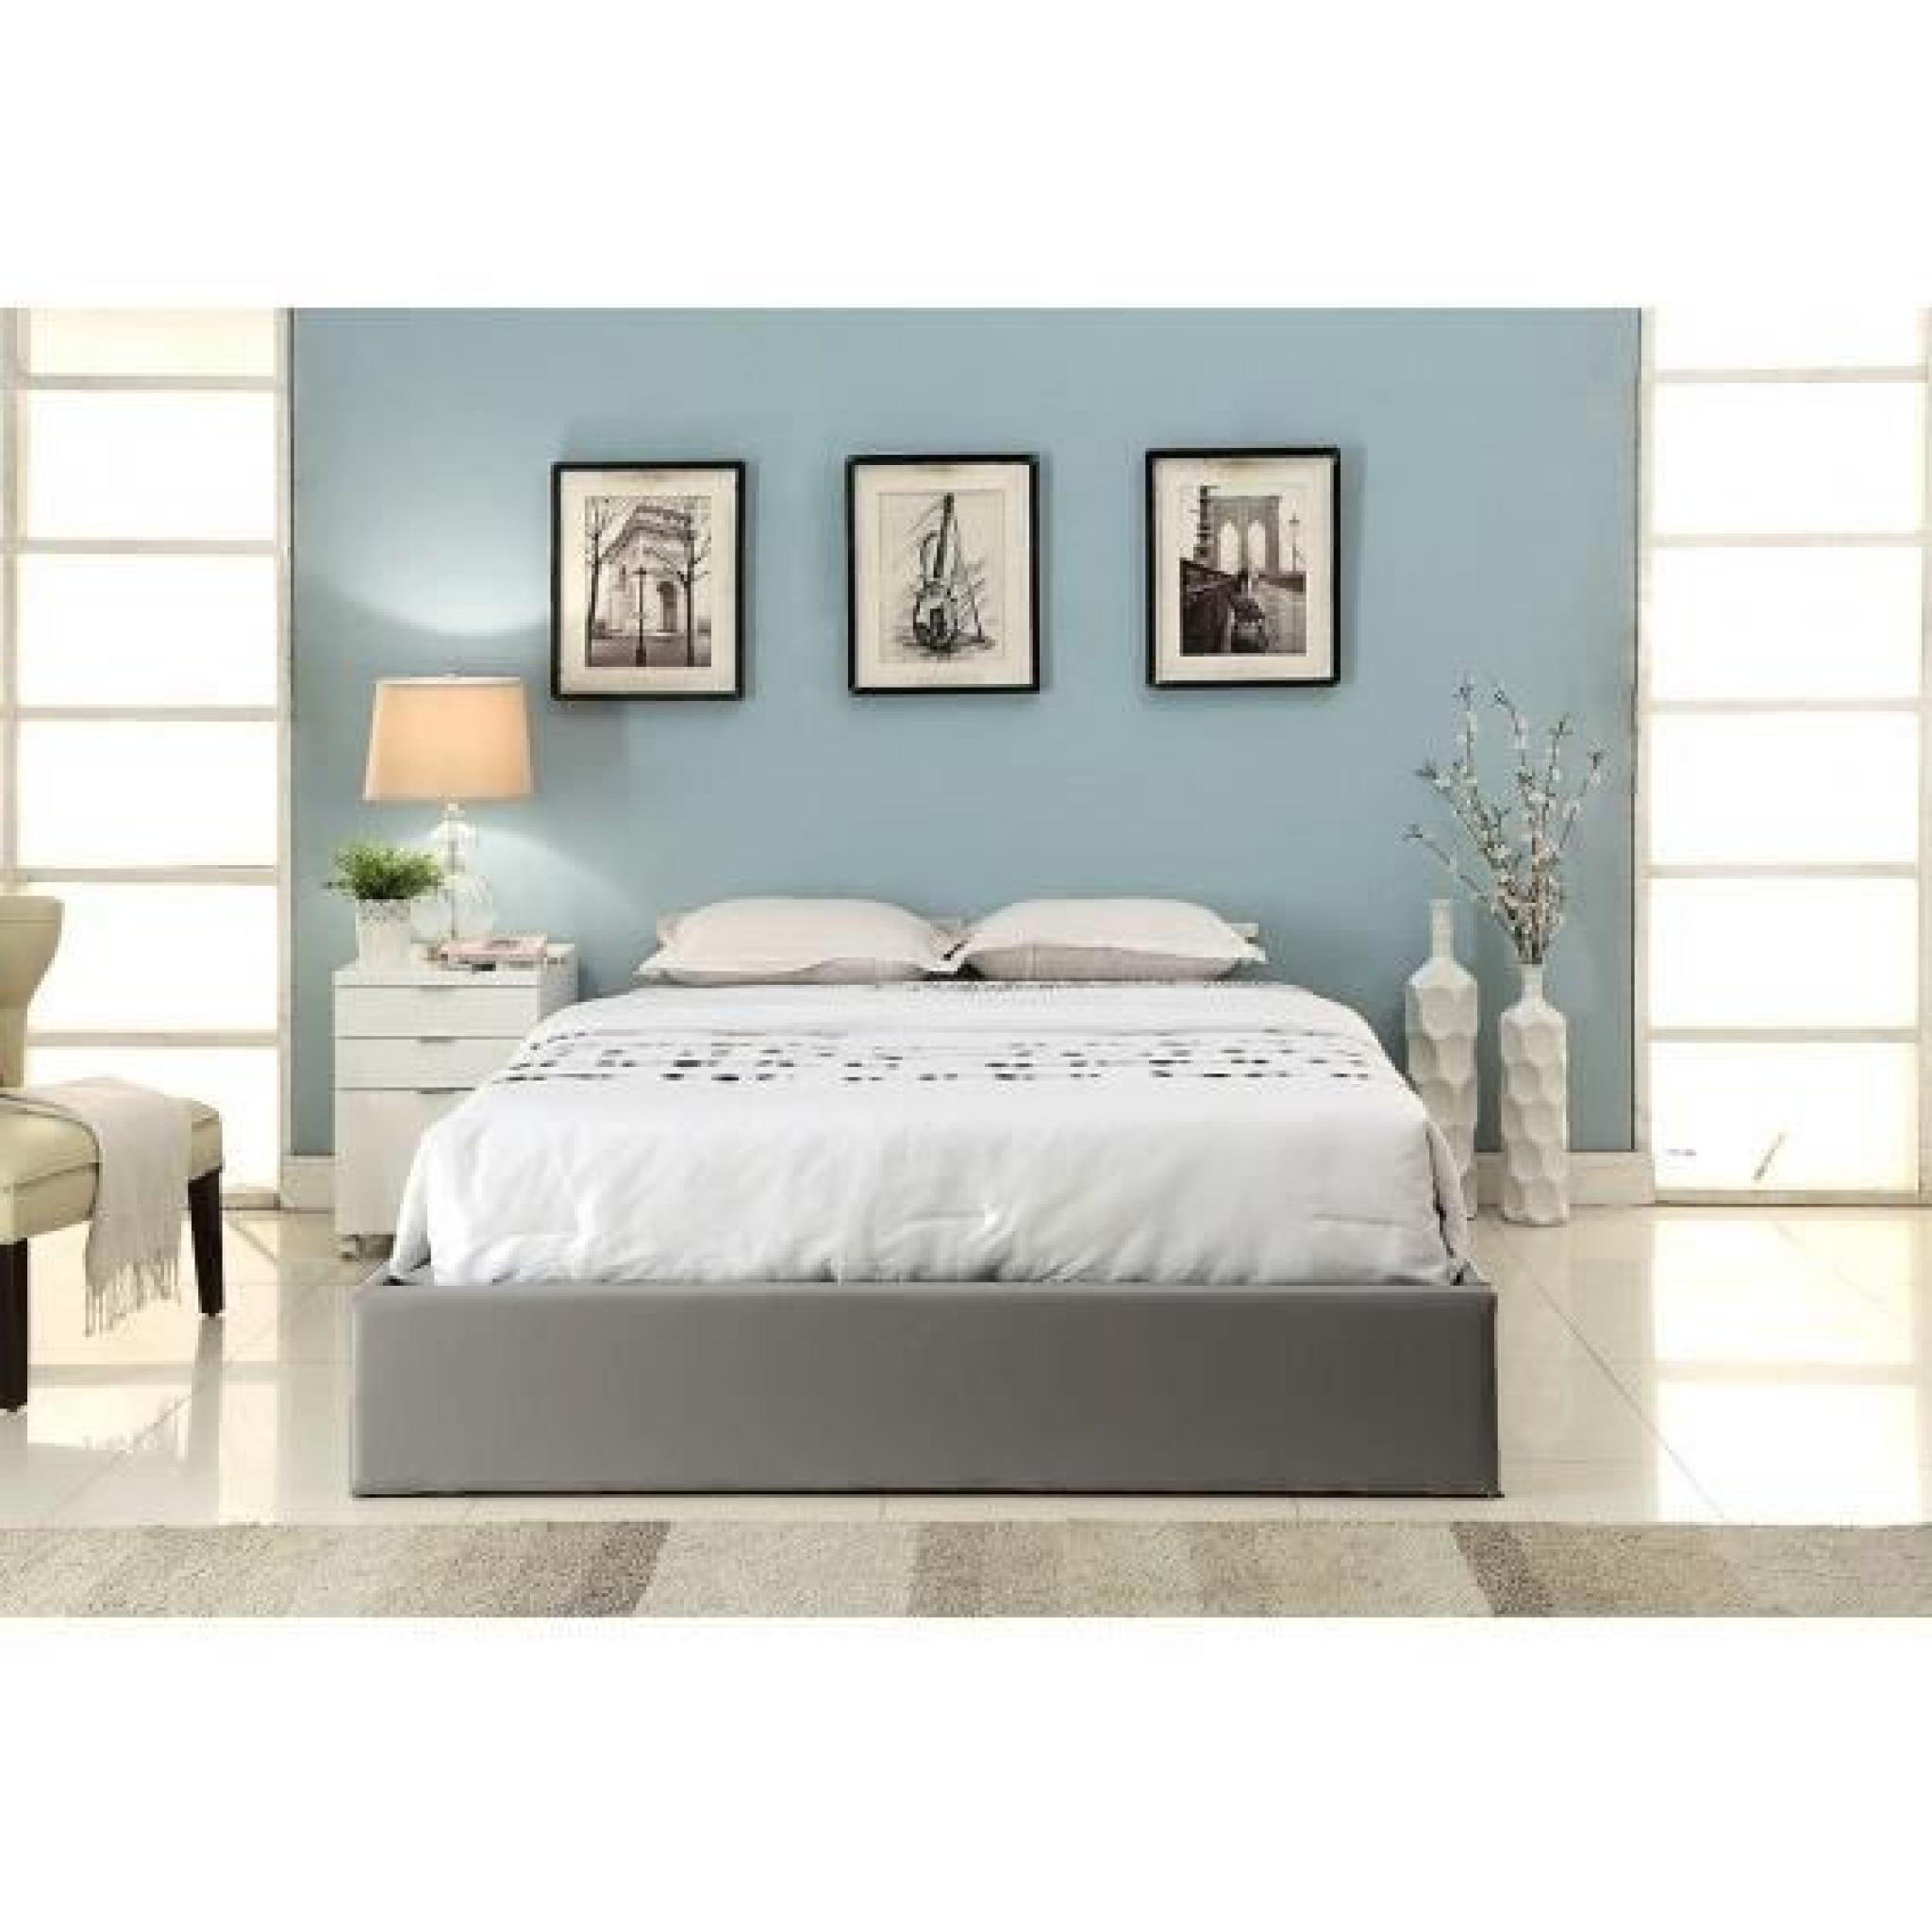 spoon lit coffre gris 160x200 cm achat vente lit pas. Black Bedroom Furniture Sets. Home Design Ideas